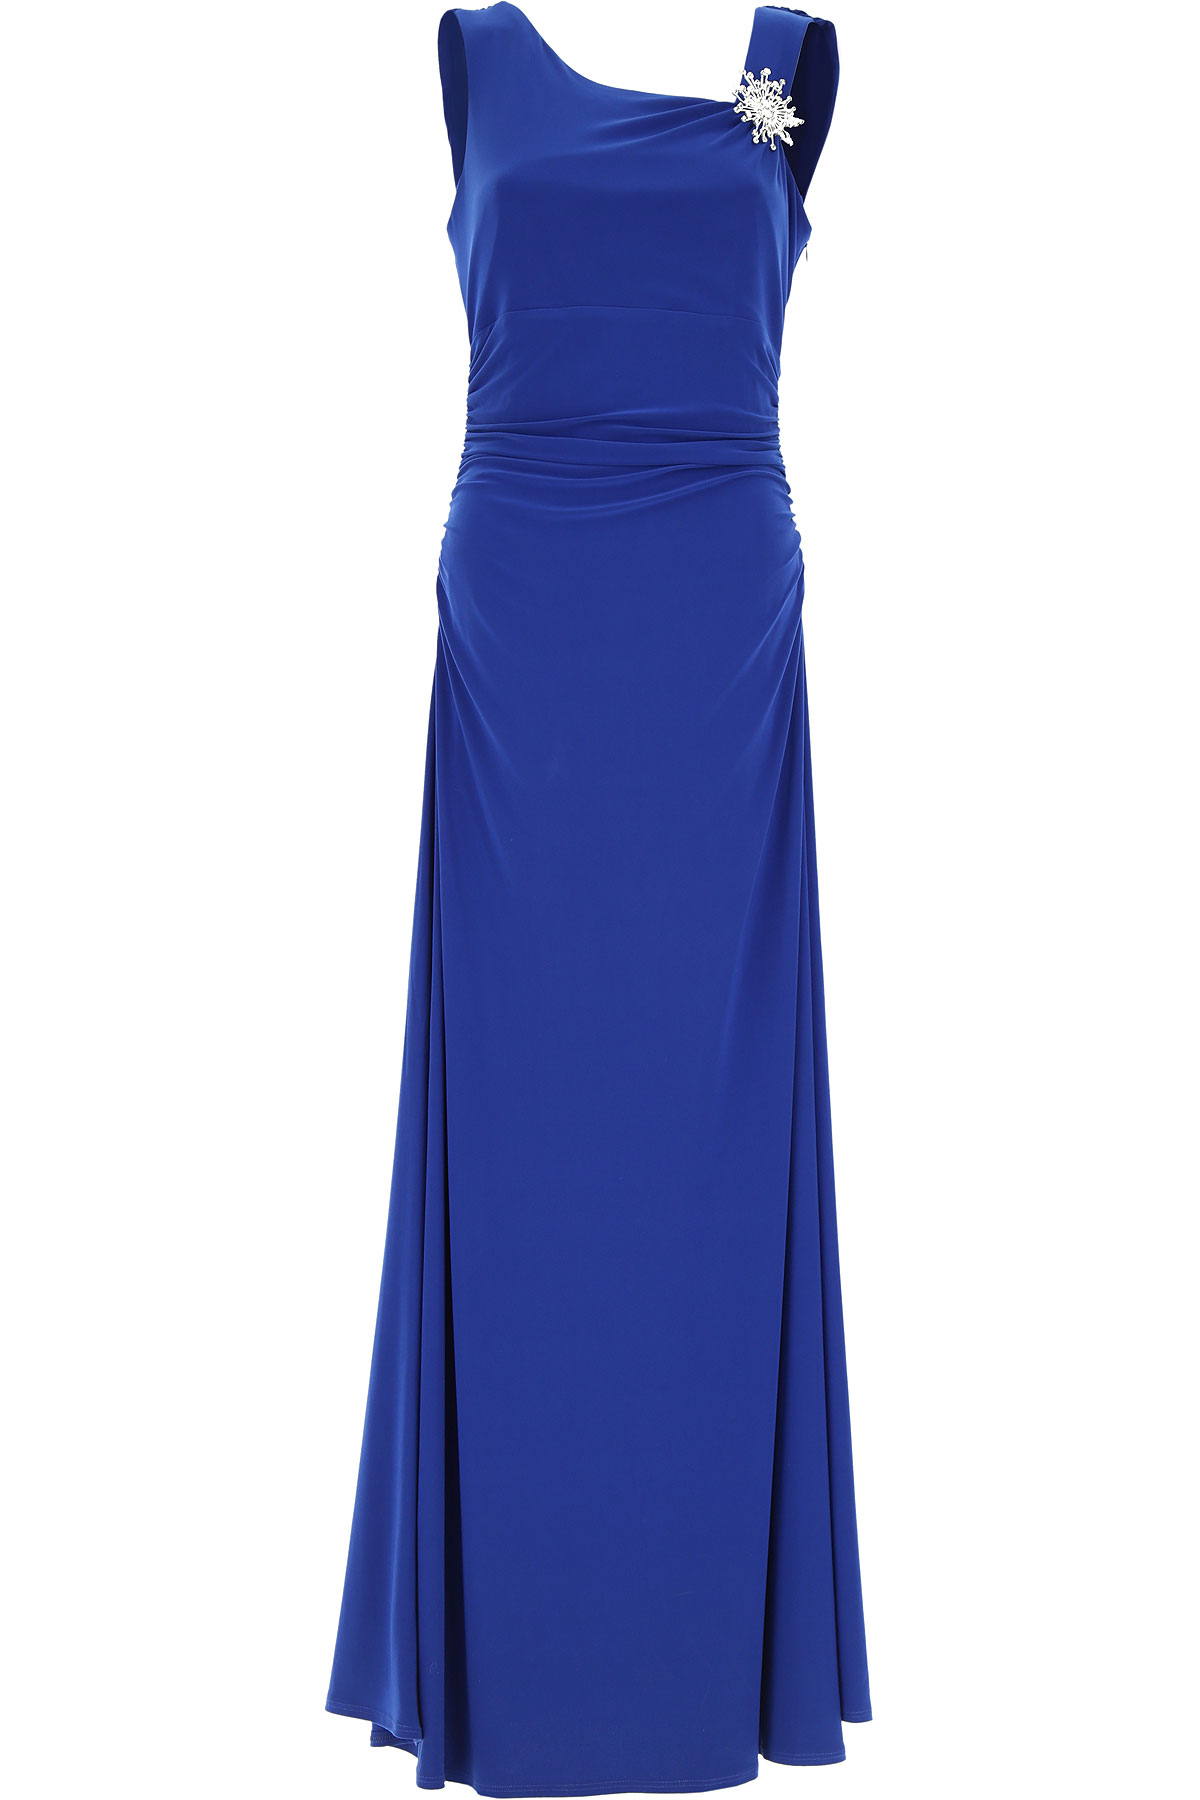 Joseph Ribkoff Dress for Women, Evening Cocktail Party, Blue, polyester, 2017, 10 12 8 USA-437257